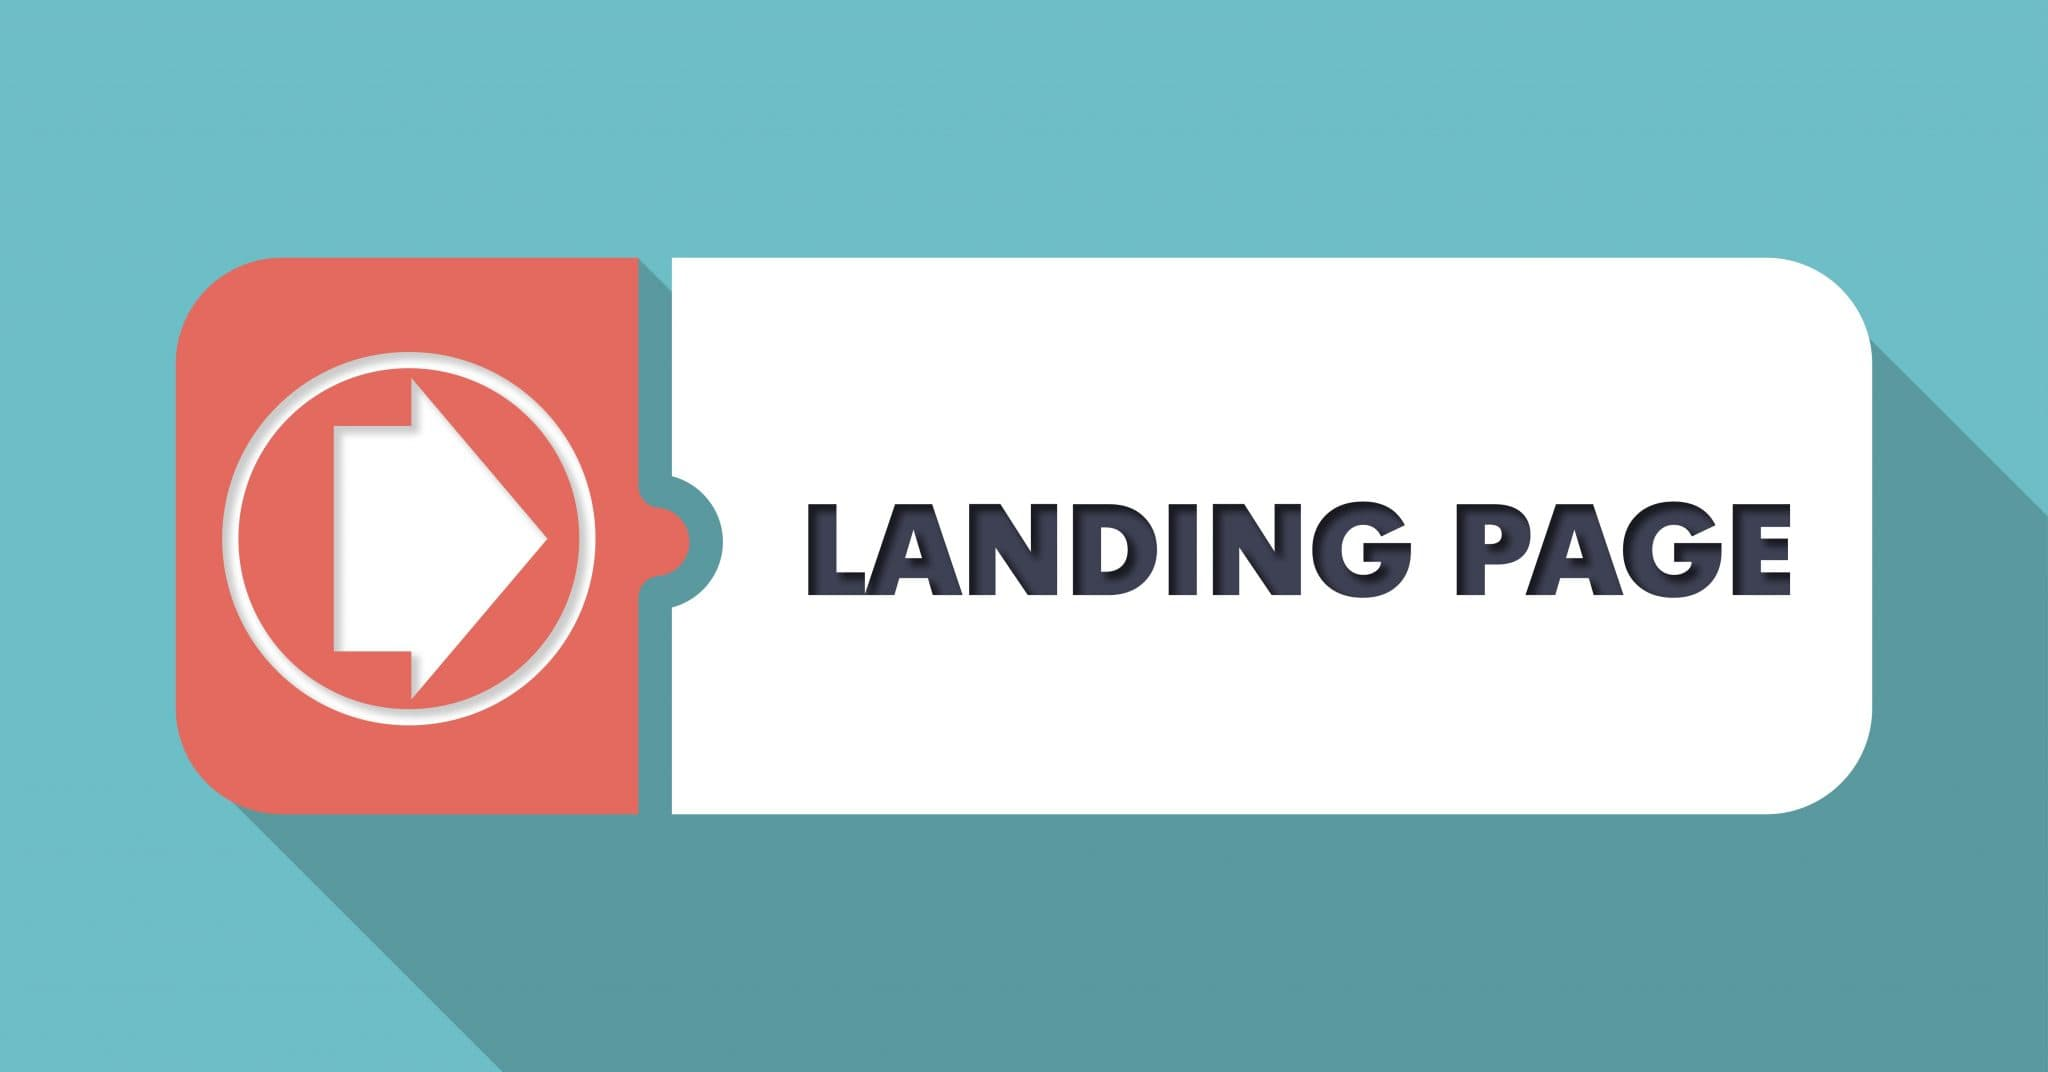 How to generate leads using Landing Pages?